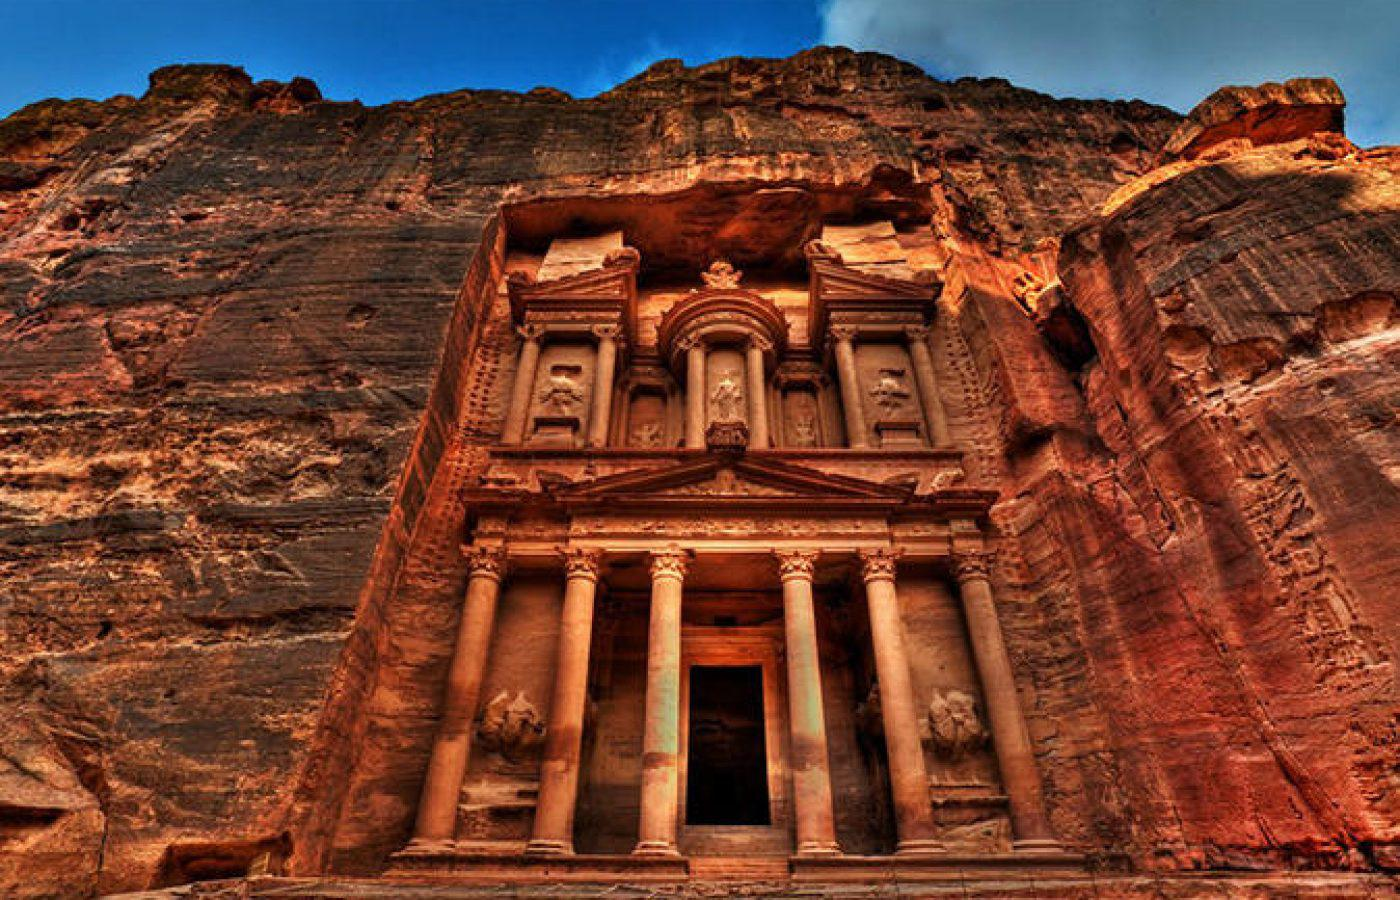 Egypt and Jordan tours to explore many things